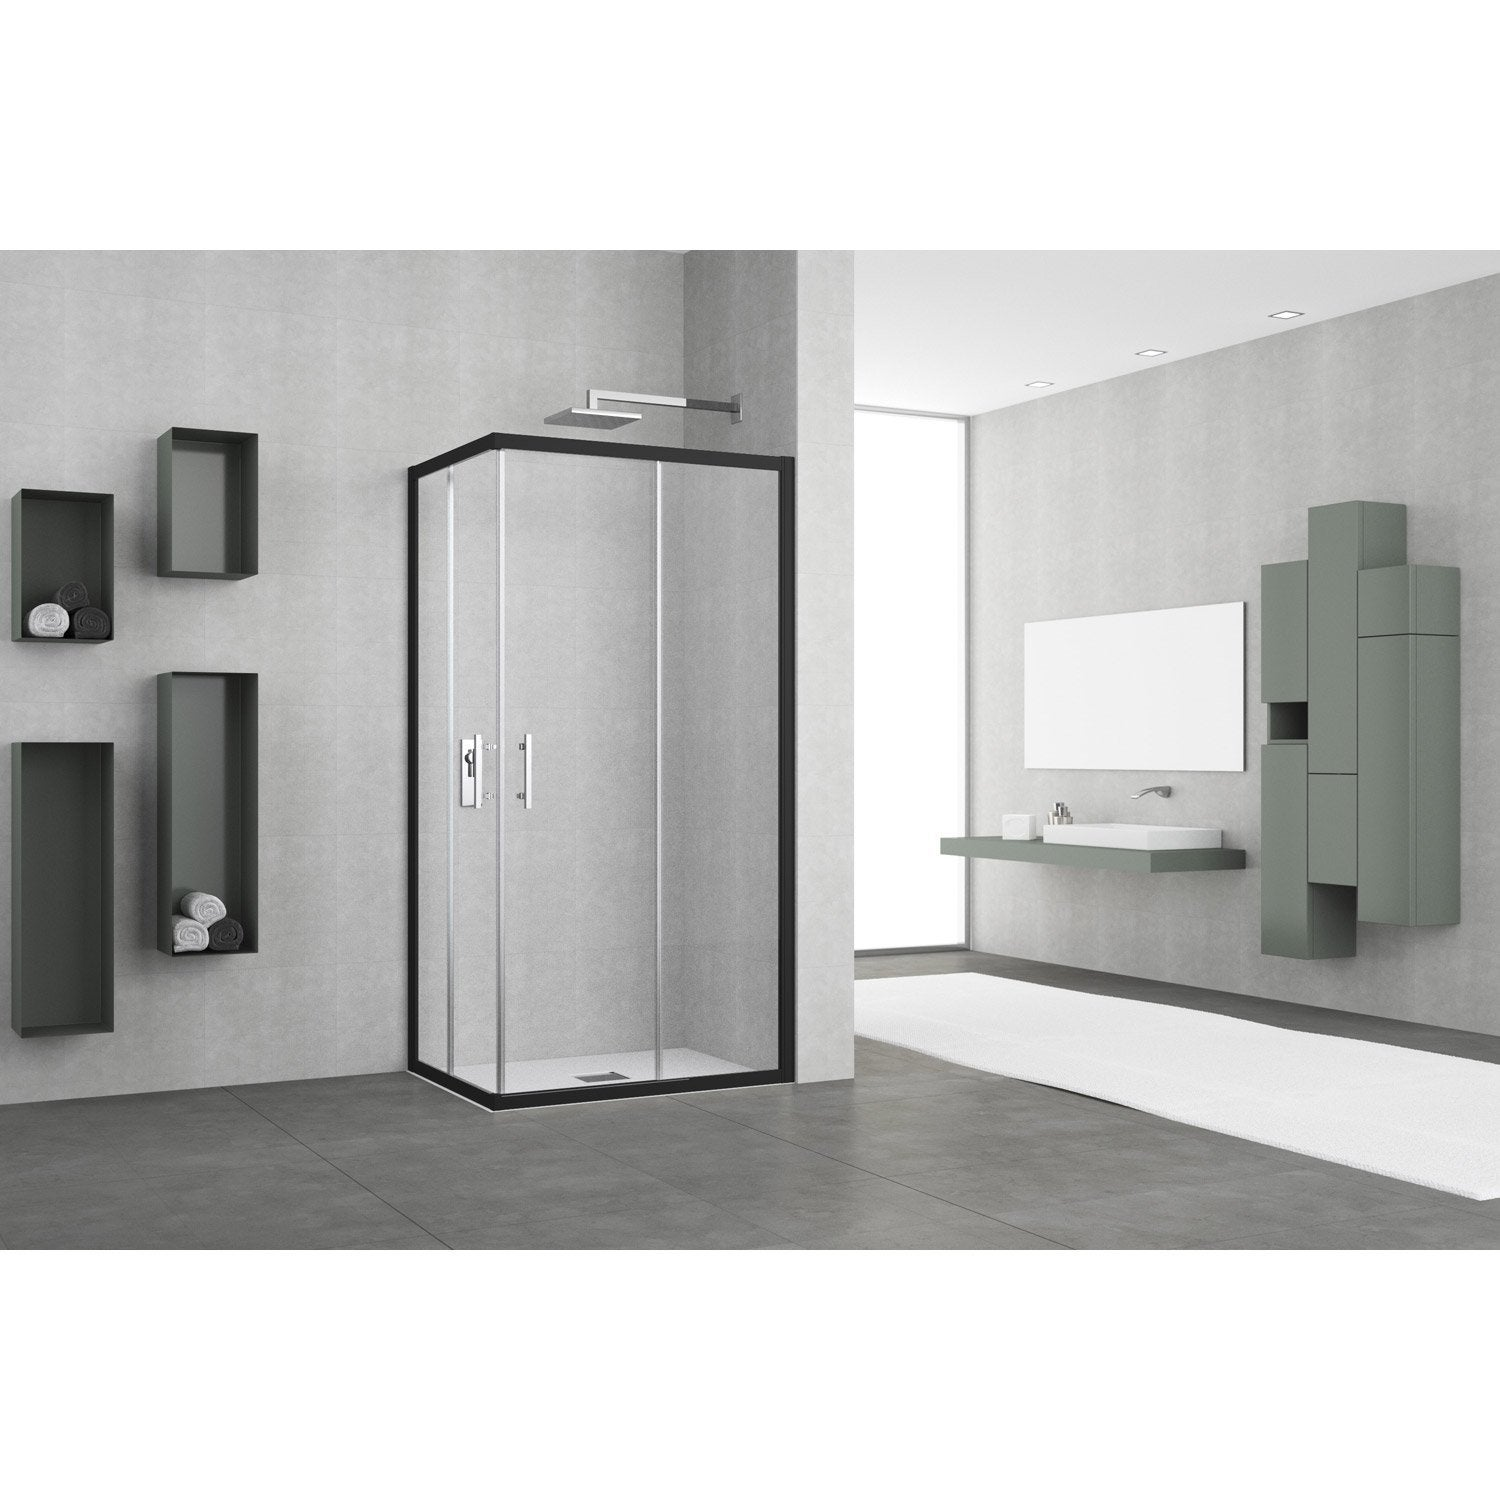 Porte de douche coulissante angle rectangle x cm noir elyt ler - Porte de douche angle ...